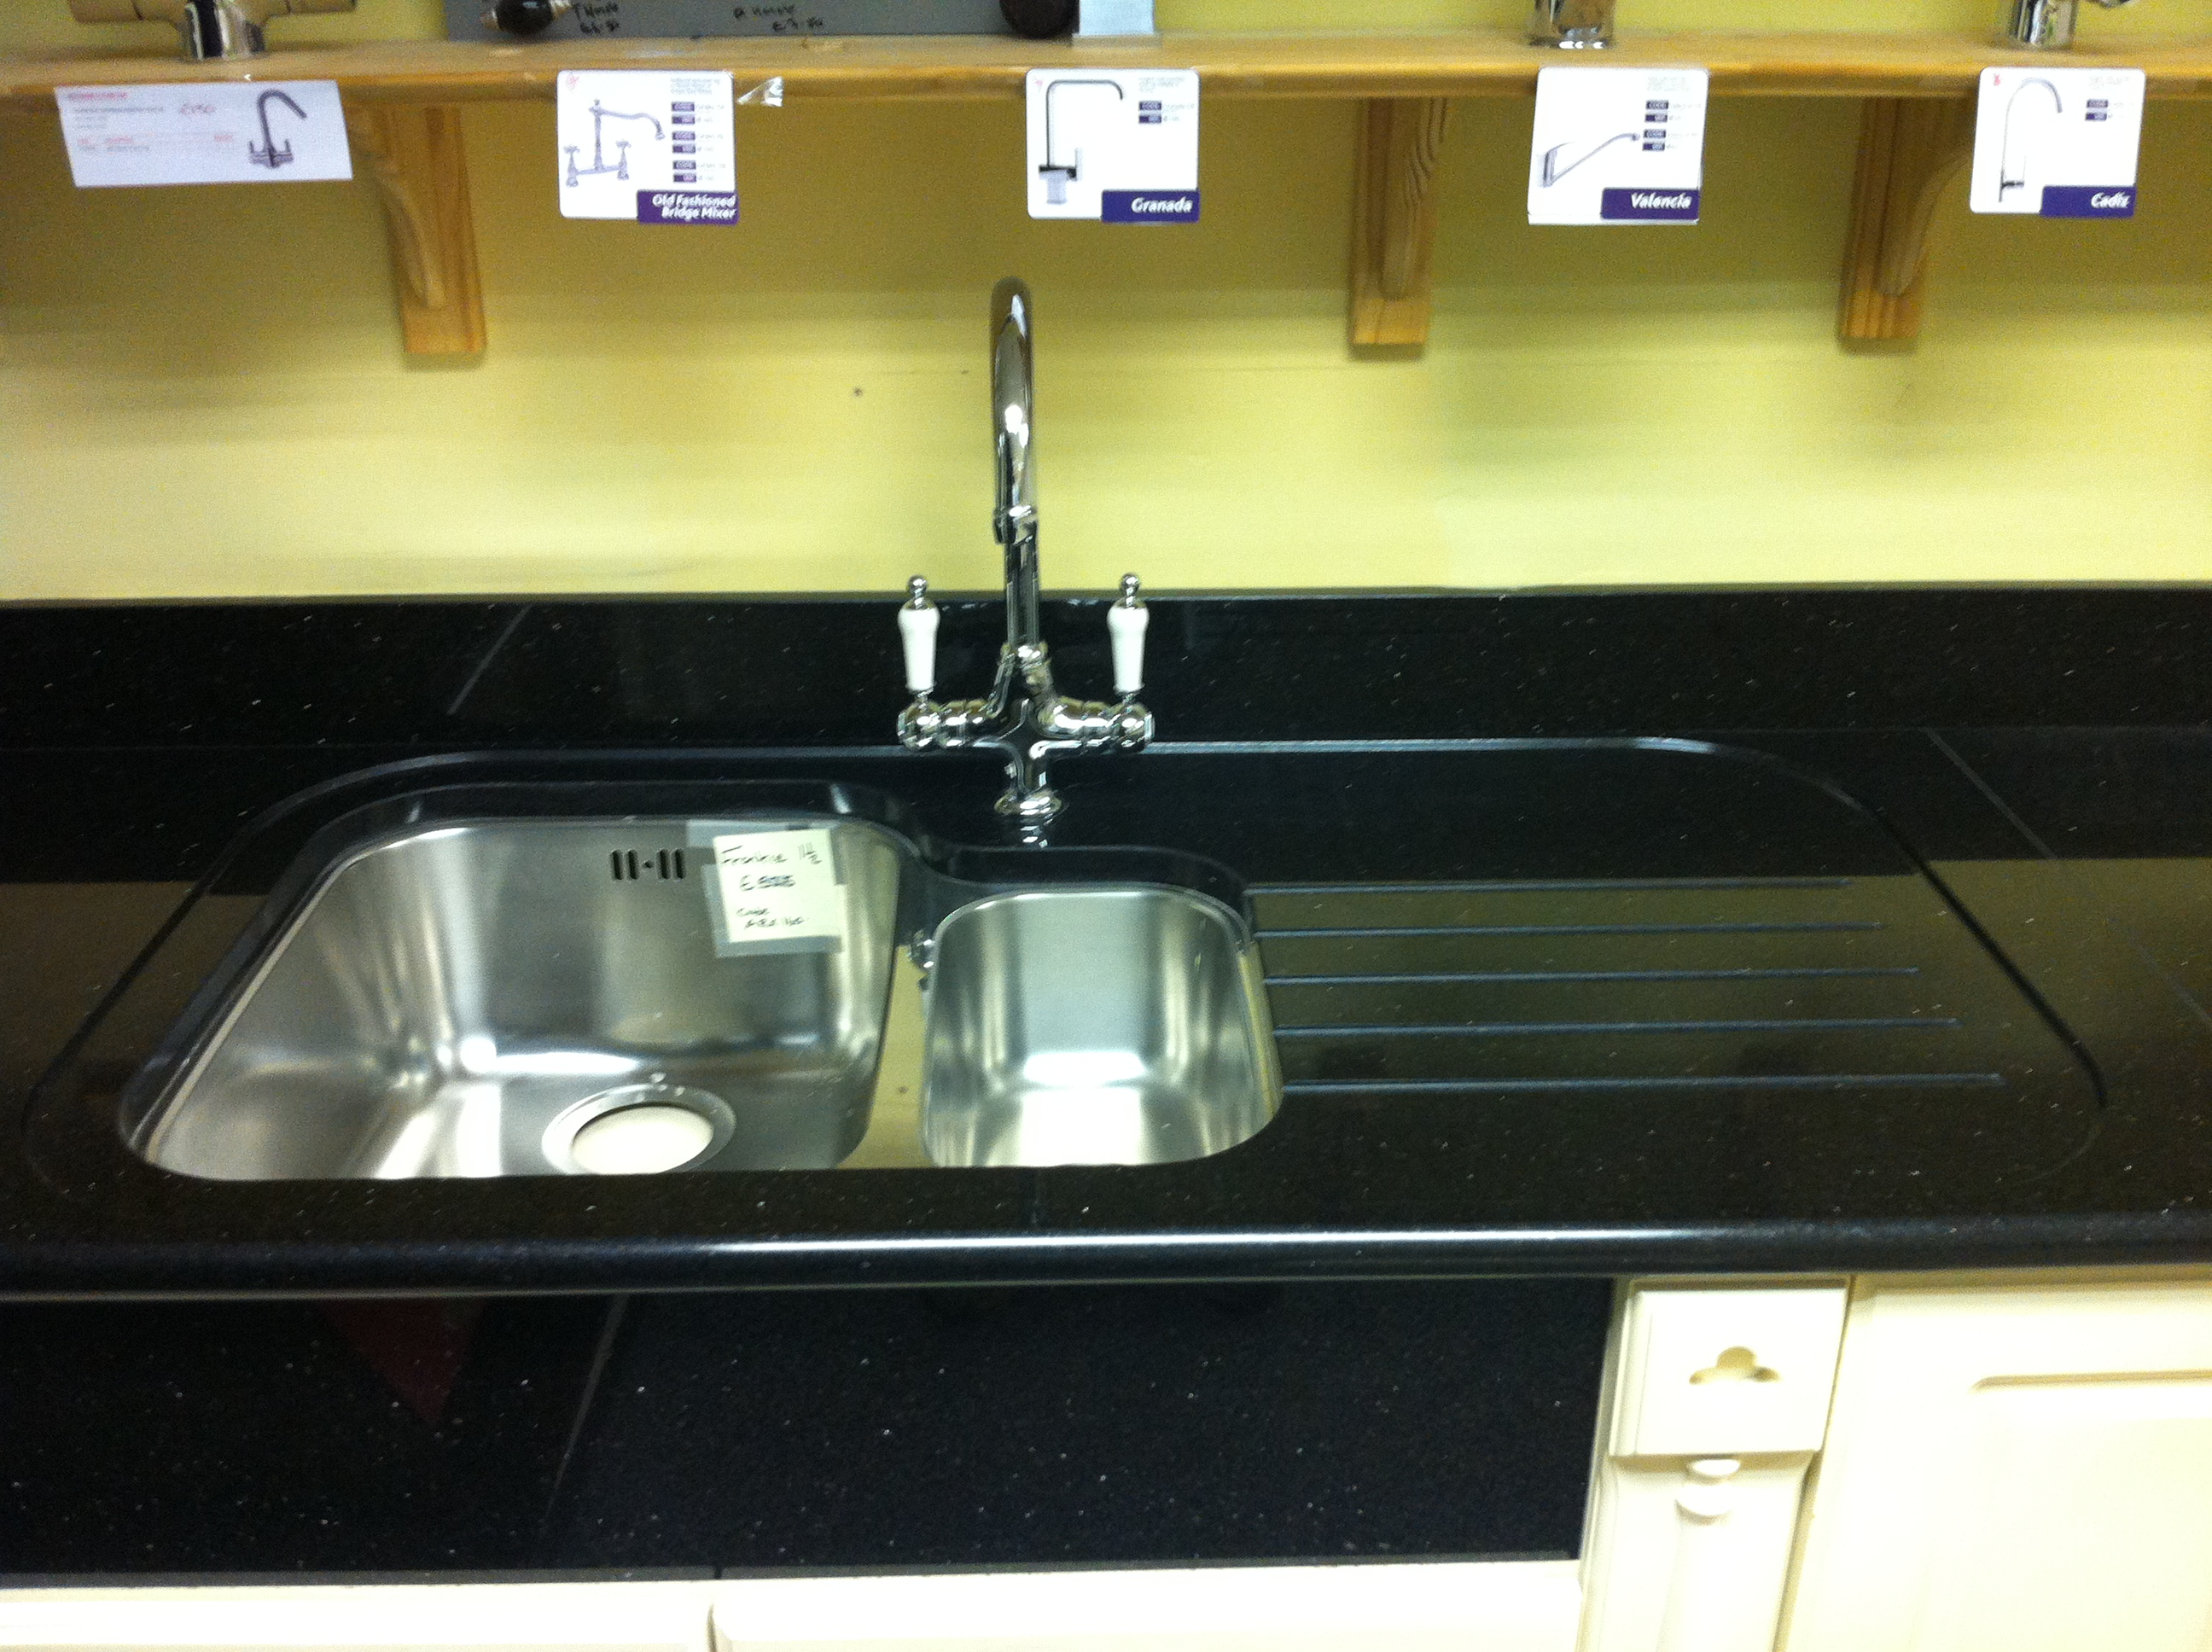 B And Q Kitchen Design Service Star Galaxy Worktop With Recess Drainer And Undermounted